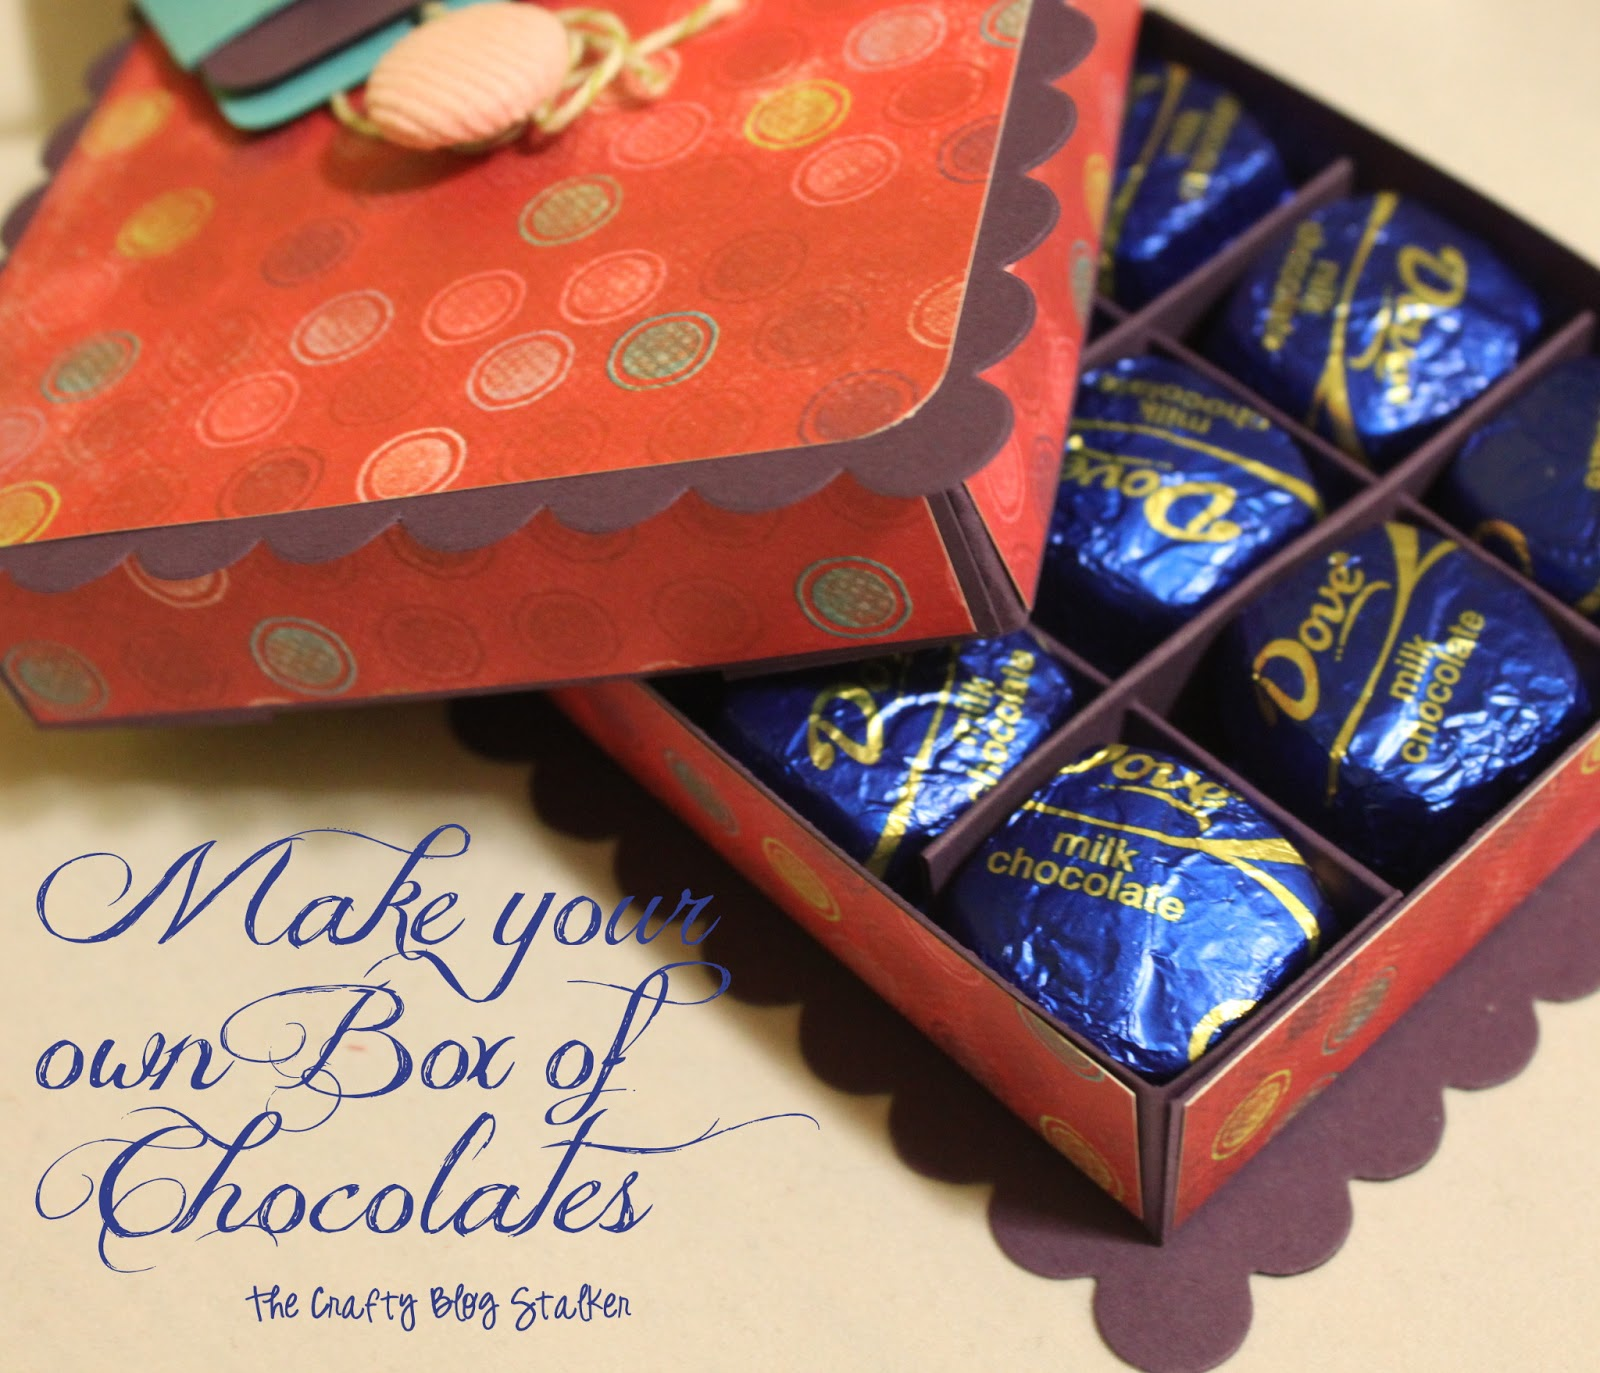 Crafty Teacher Lady February 2013: How To Make A Paper Box Of Chocolates